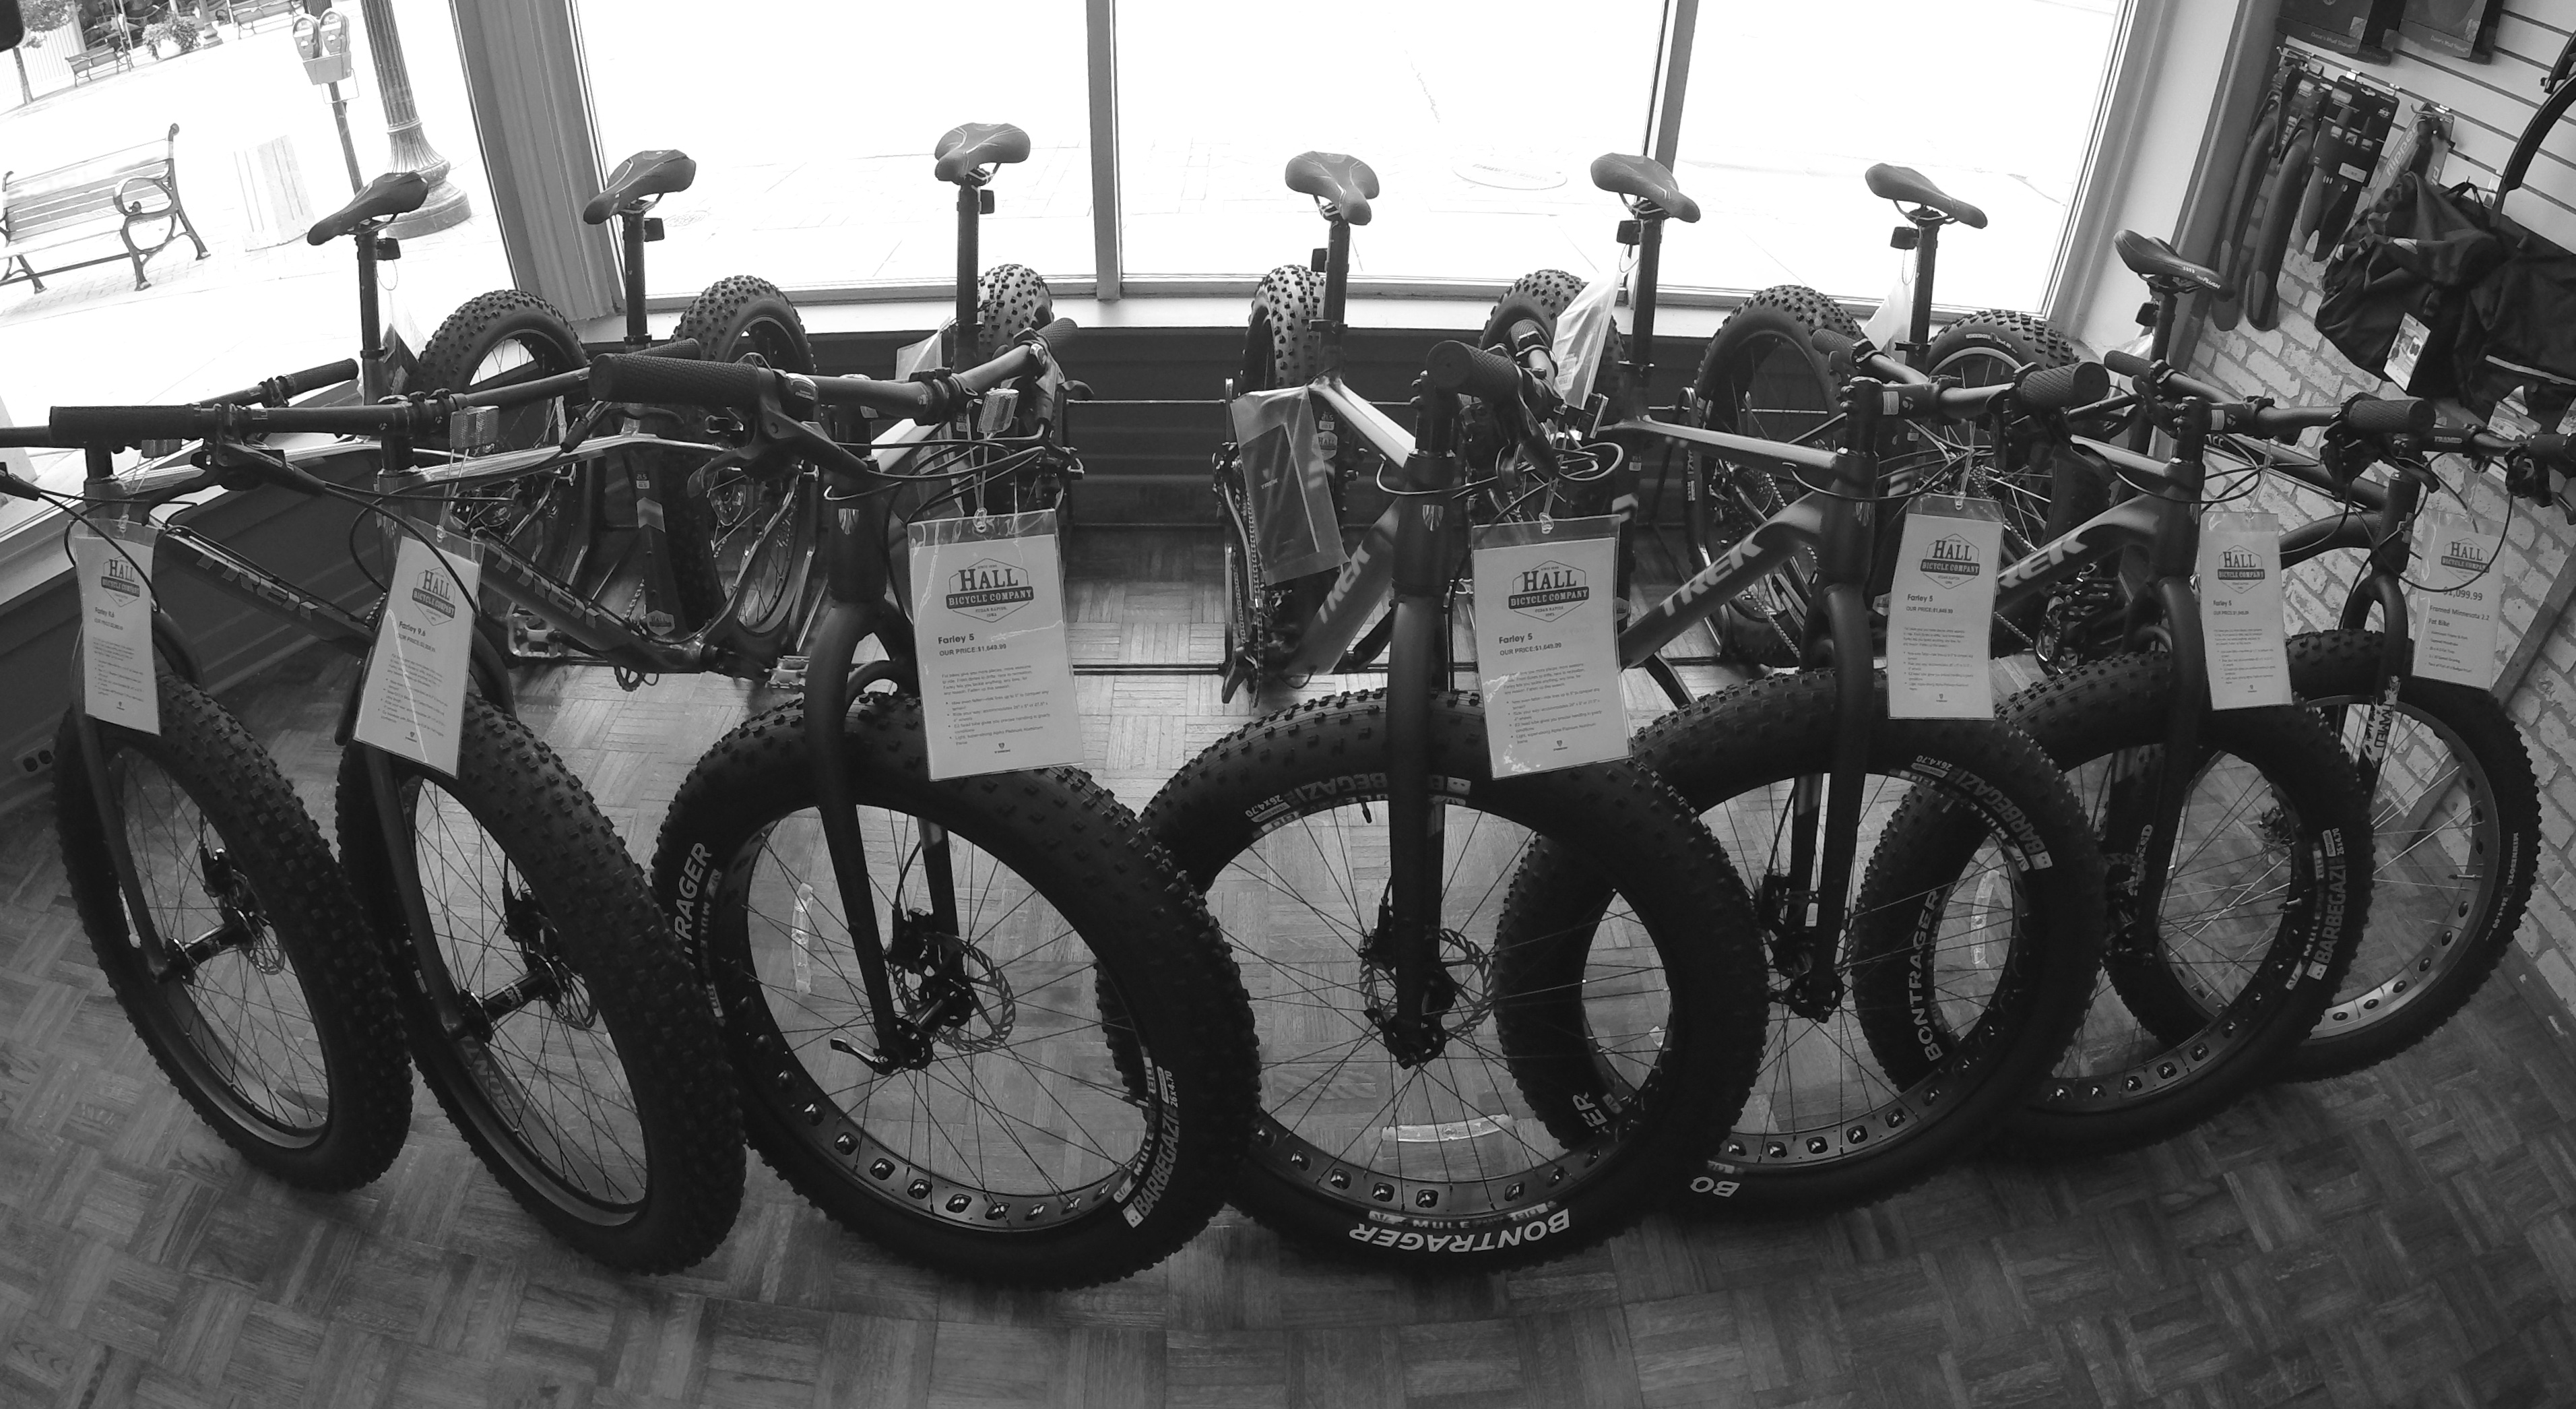 Fat Bikes What S The Deal With These Things Hall Bicycle Company